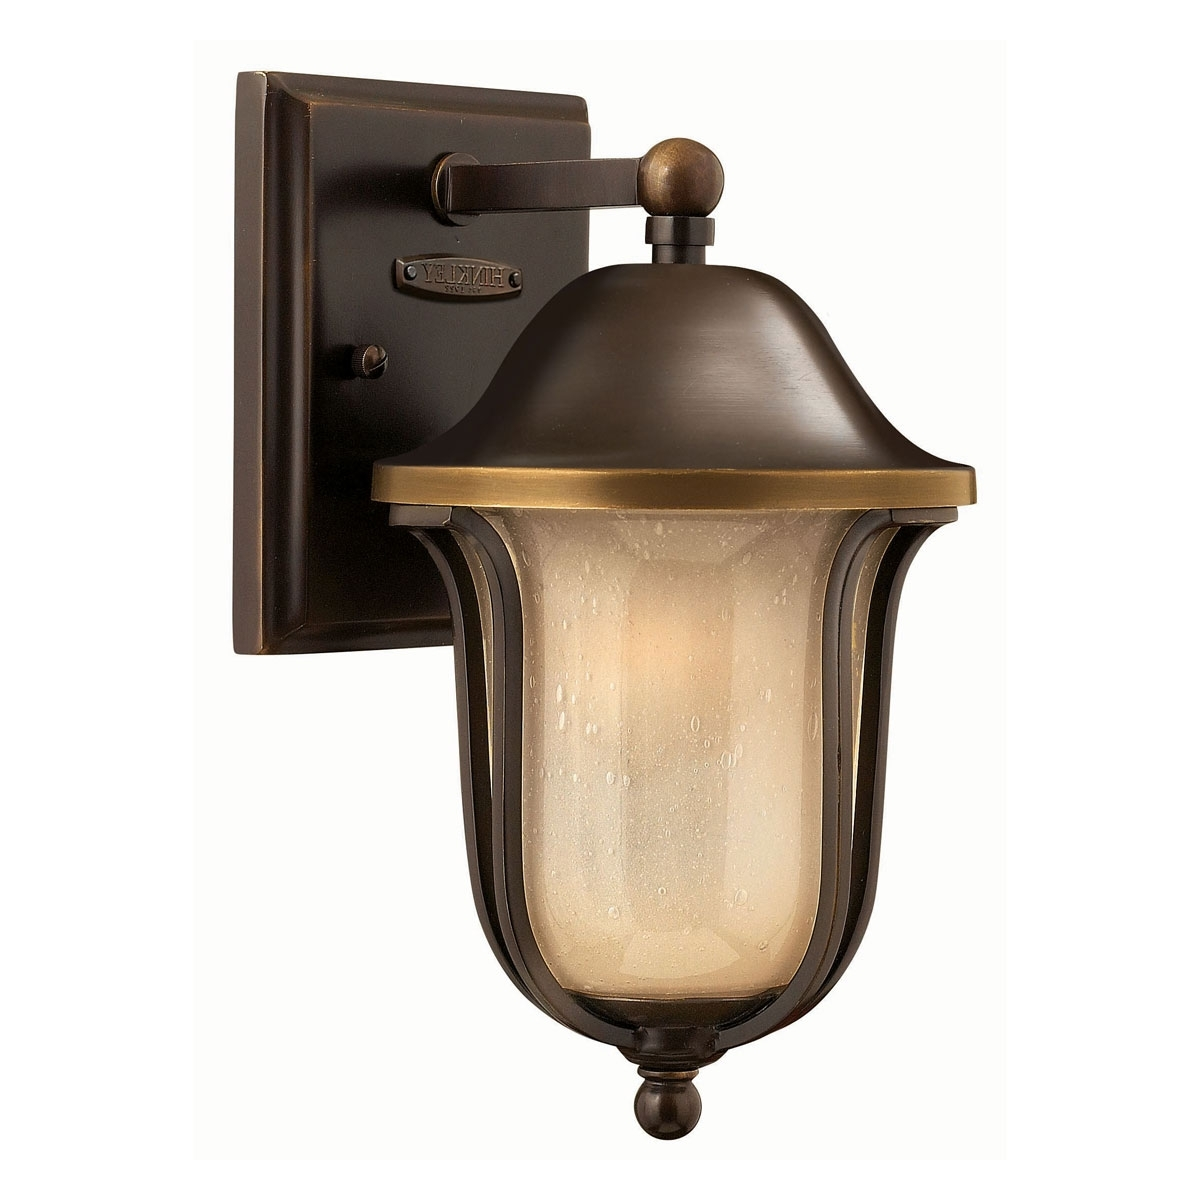 Hinkley For Latest Brass Porch Hinkley Lighting (View 11 of 20)